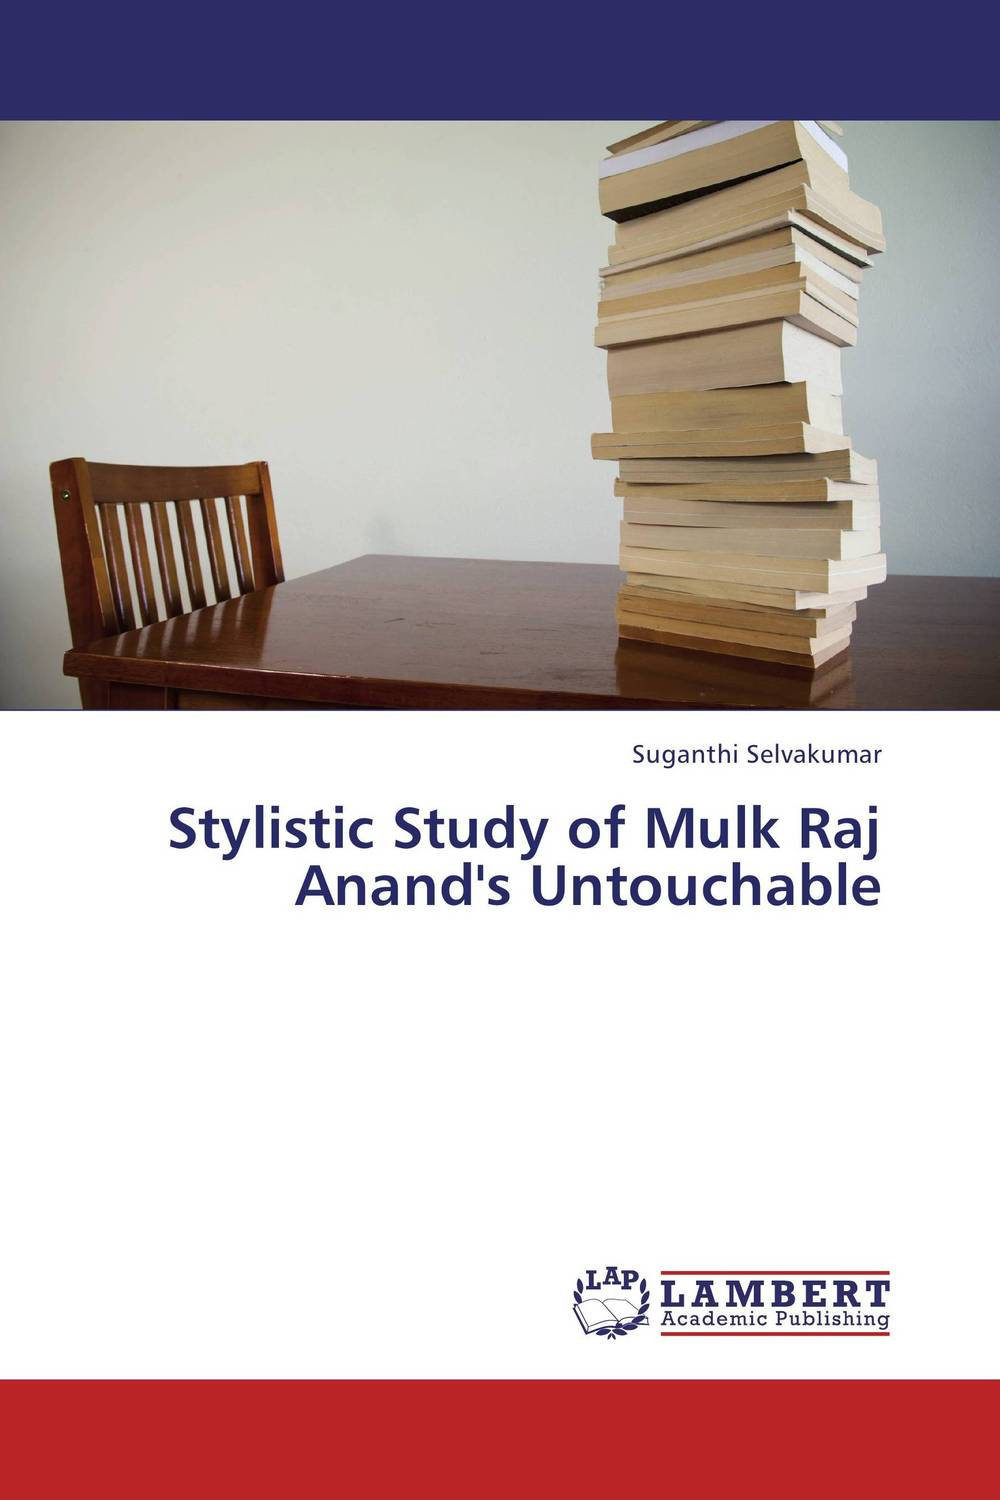 Stylistic Study of Mulk Raj Anand's Untouchable the lonely polygamist – a novel